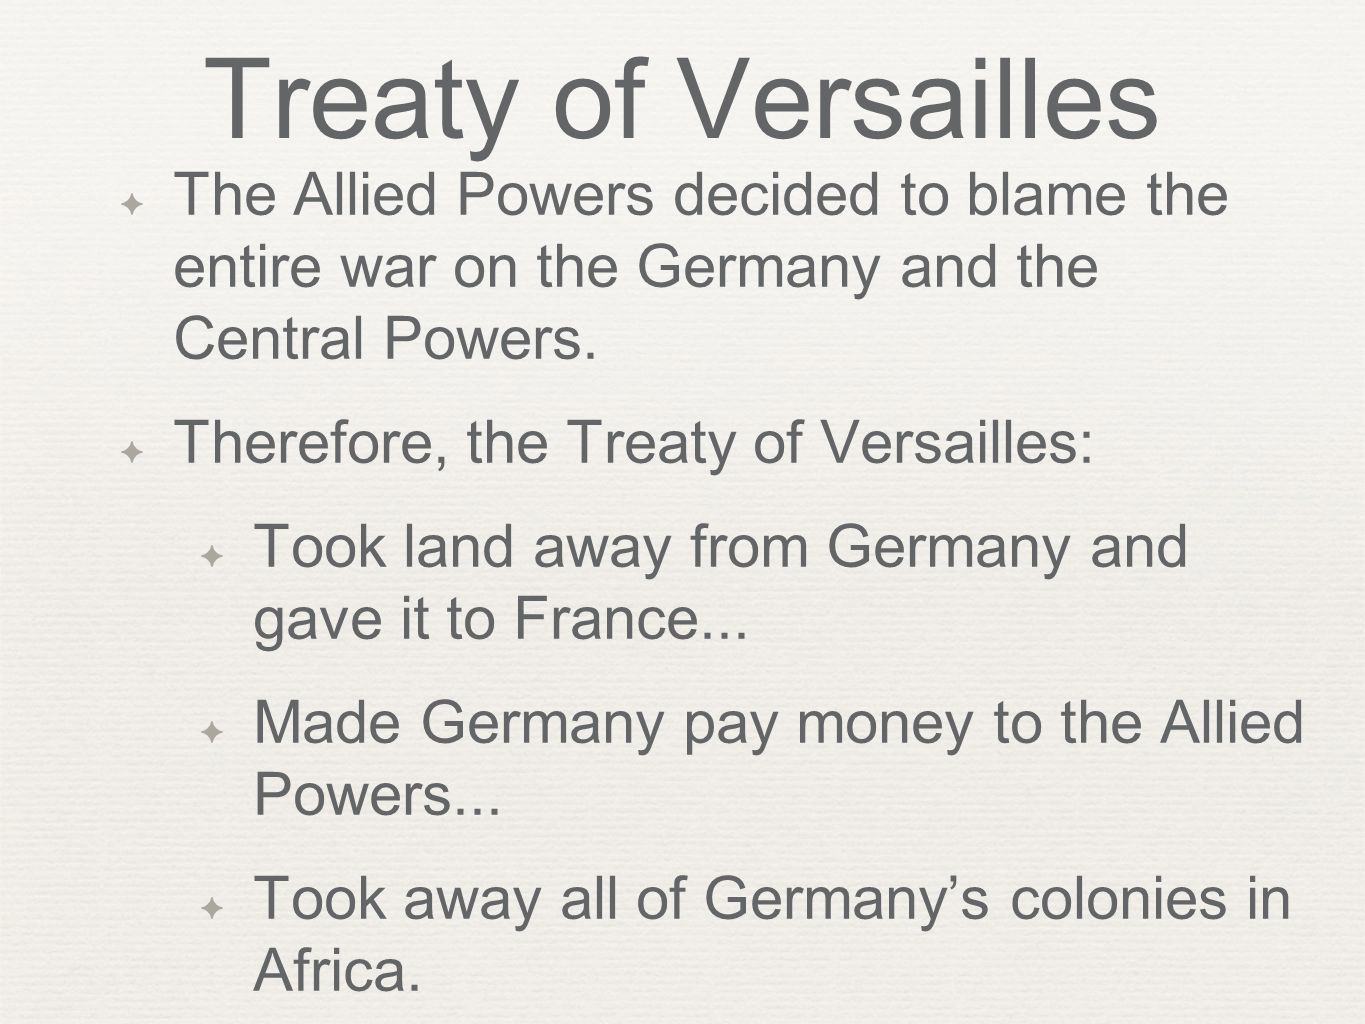 Treaty of Versailles The Allied Powers decided to blame the entire war on the Germany and the Central Powers.